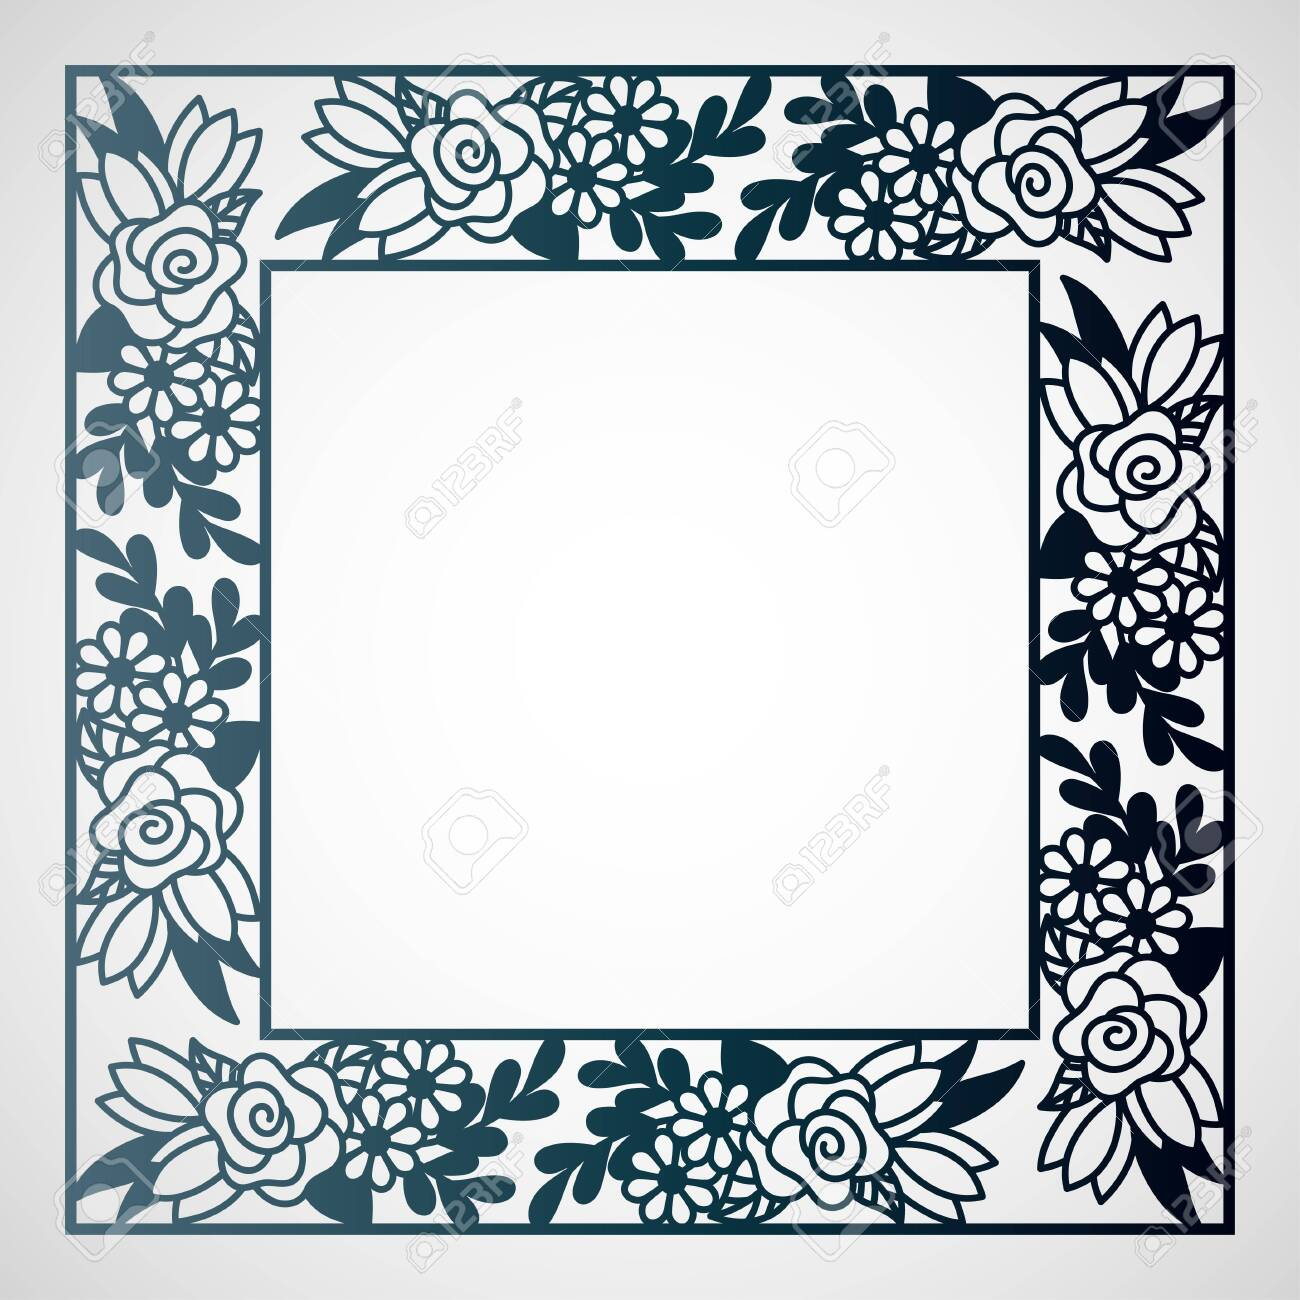 Openwork square frame with floral pattern. Laser cutting template for greeting cards, envelopes, wedding invitations. - 123291901